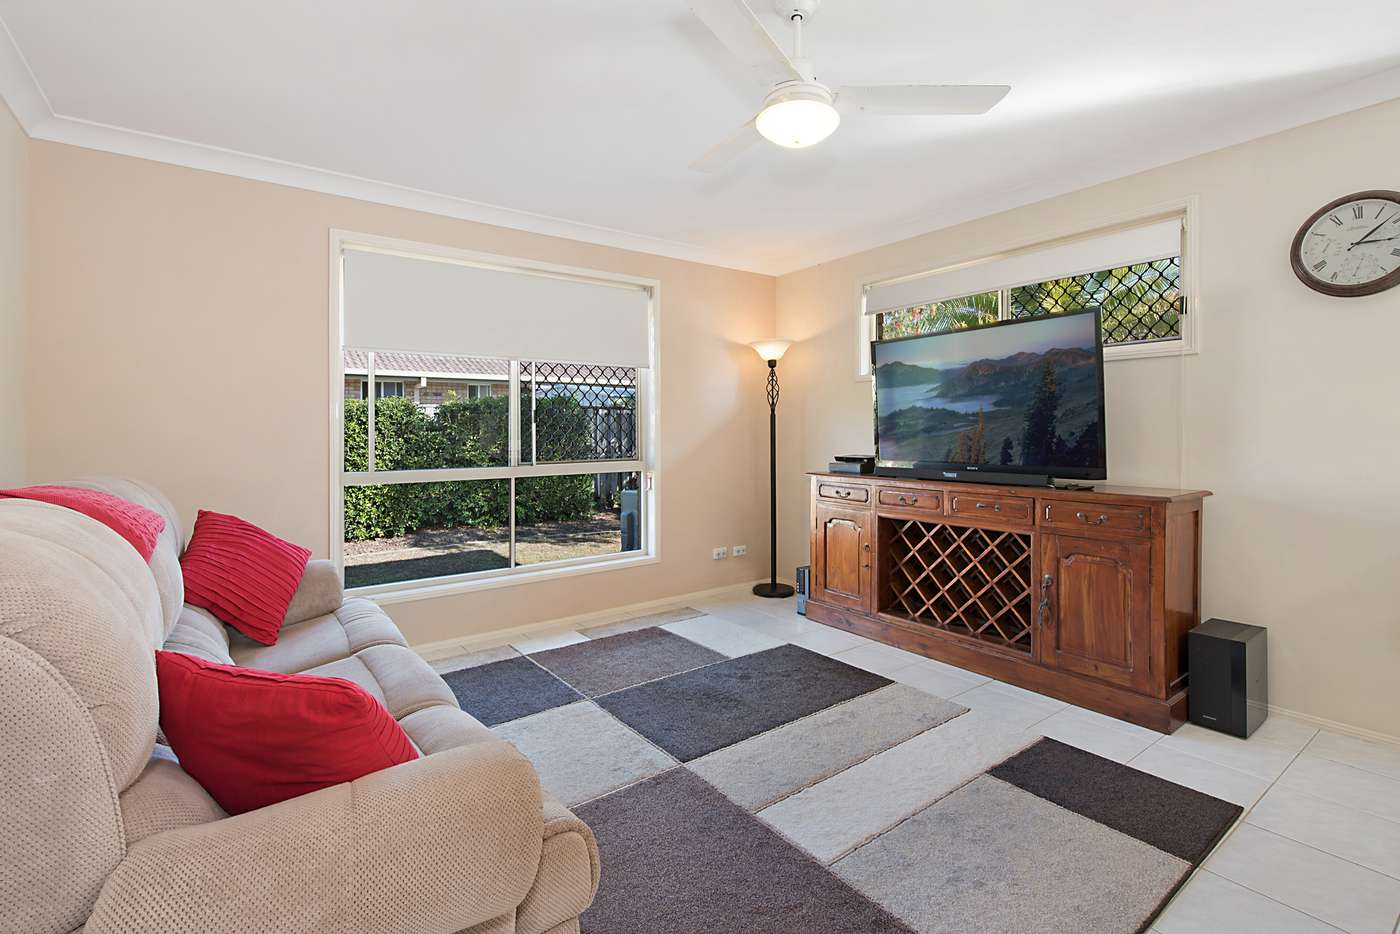 Fifth view of Homely house listing, 3 Padua Place, Boondall QLD 4034